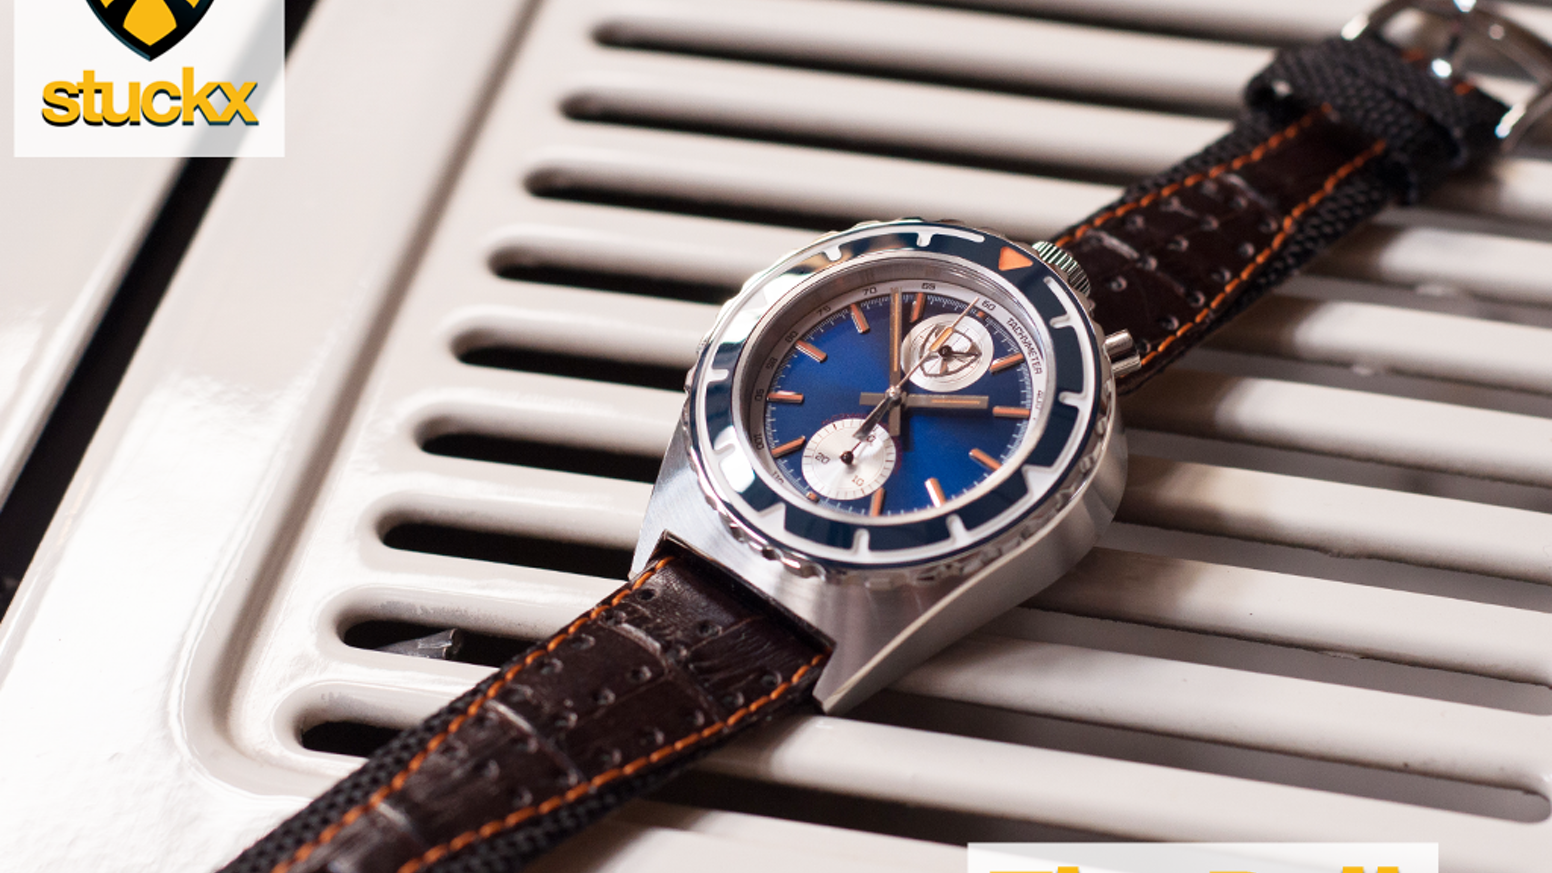 """A high quality watch in typical 70's """"bullhead"""" design. Powered by a mechanical automatic- or mecha-quartz chronograph movement."""